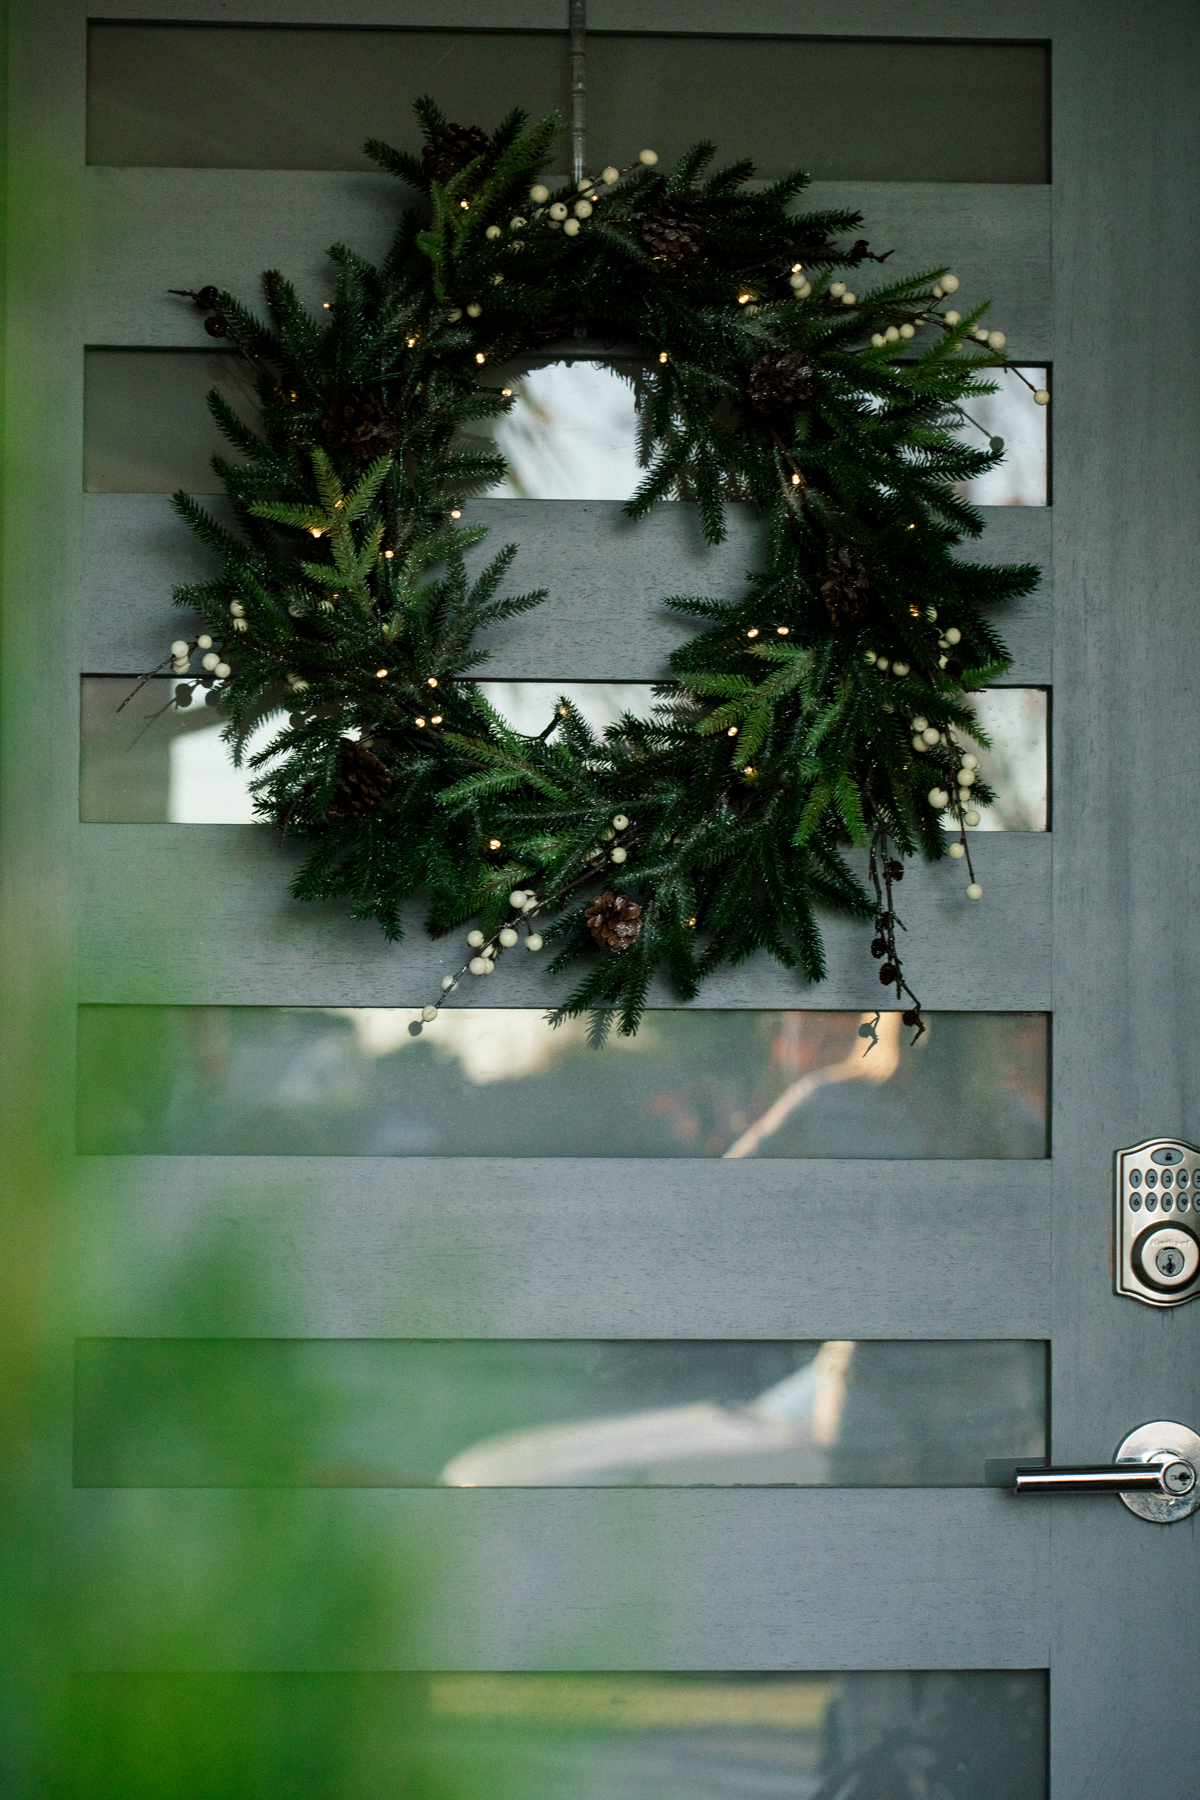 Outside Holiday Decor of wreath on front door